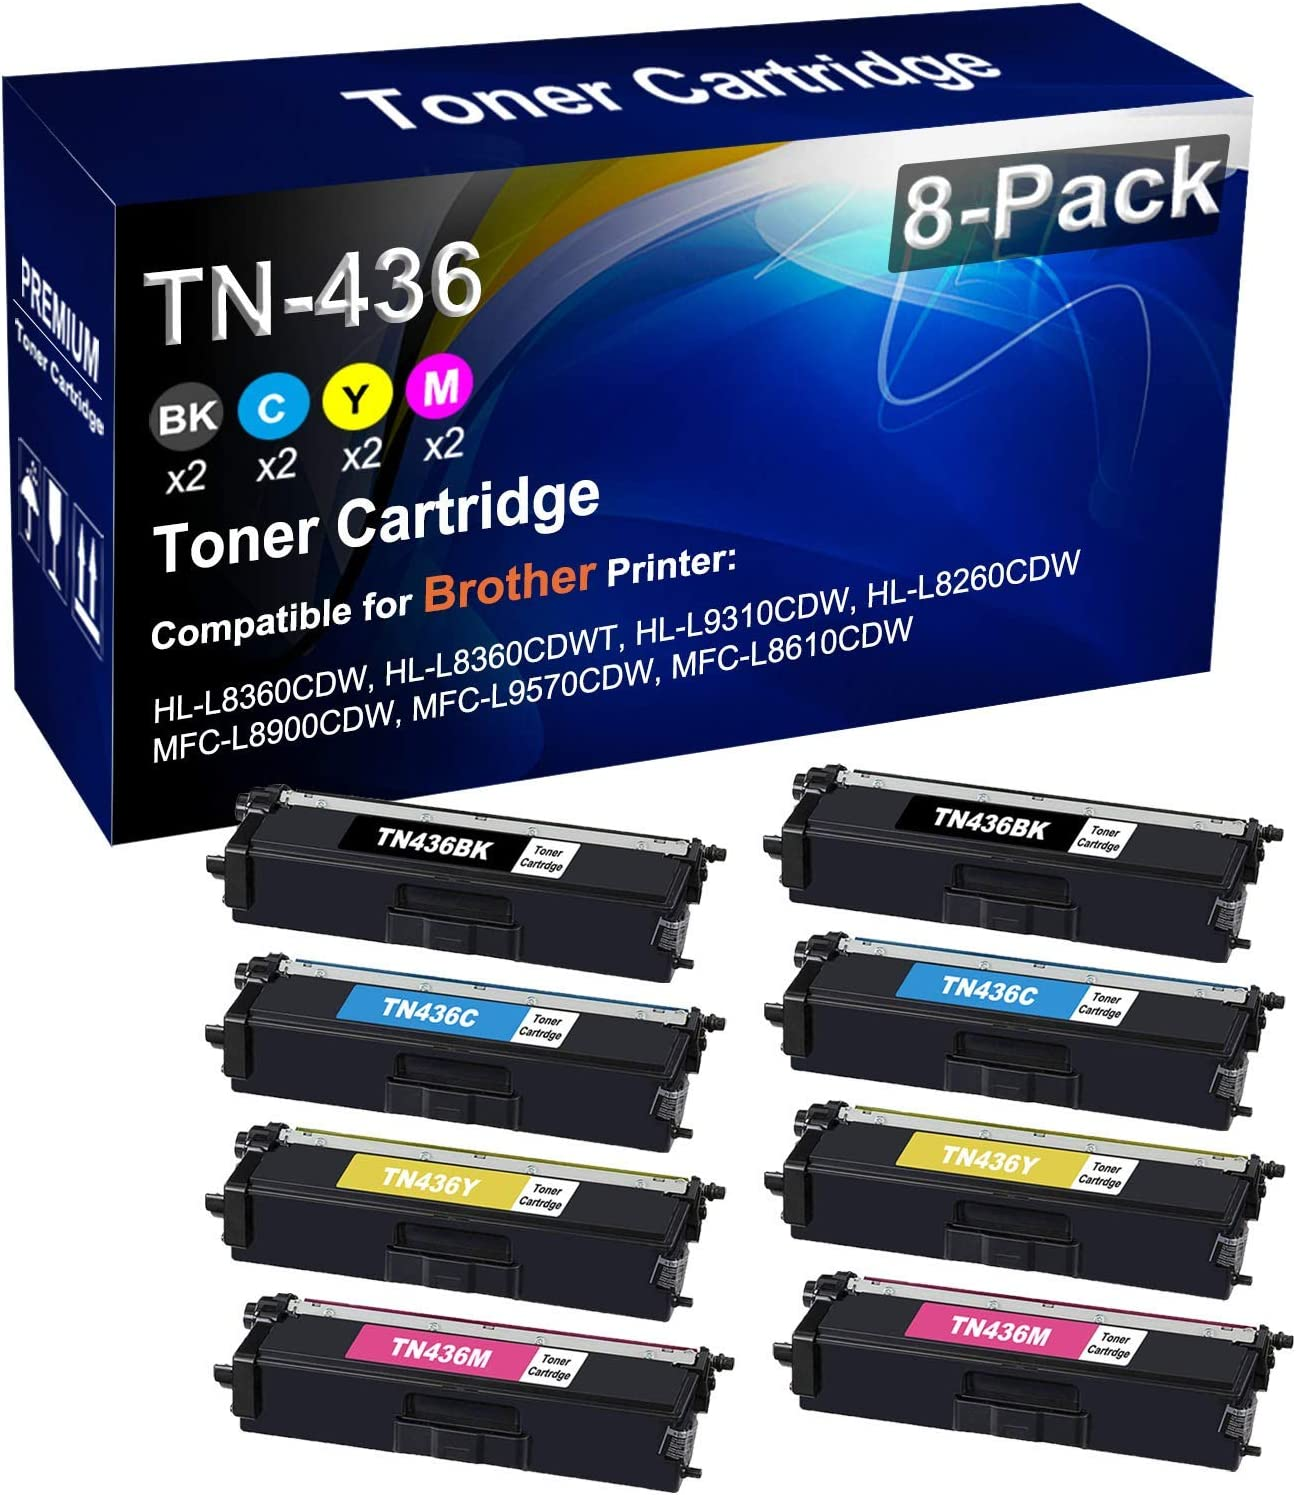 8-Pack (2BK+2C+2Y+2M) Compatible High Yield TN-436 TN436 Laser Printer Toner Cartridge use for Brother HL-L8360CDW HL-L8360CDWT MFC-L8900CDW MFC-L9570CDW Printer